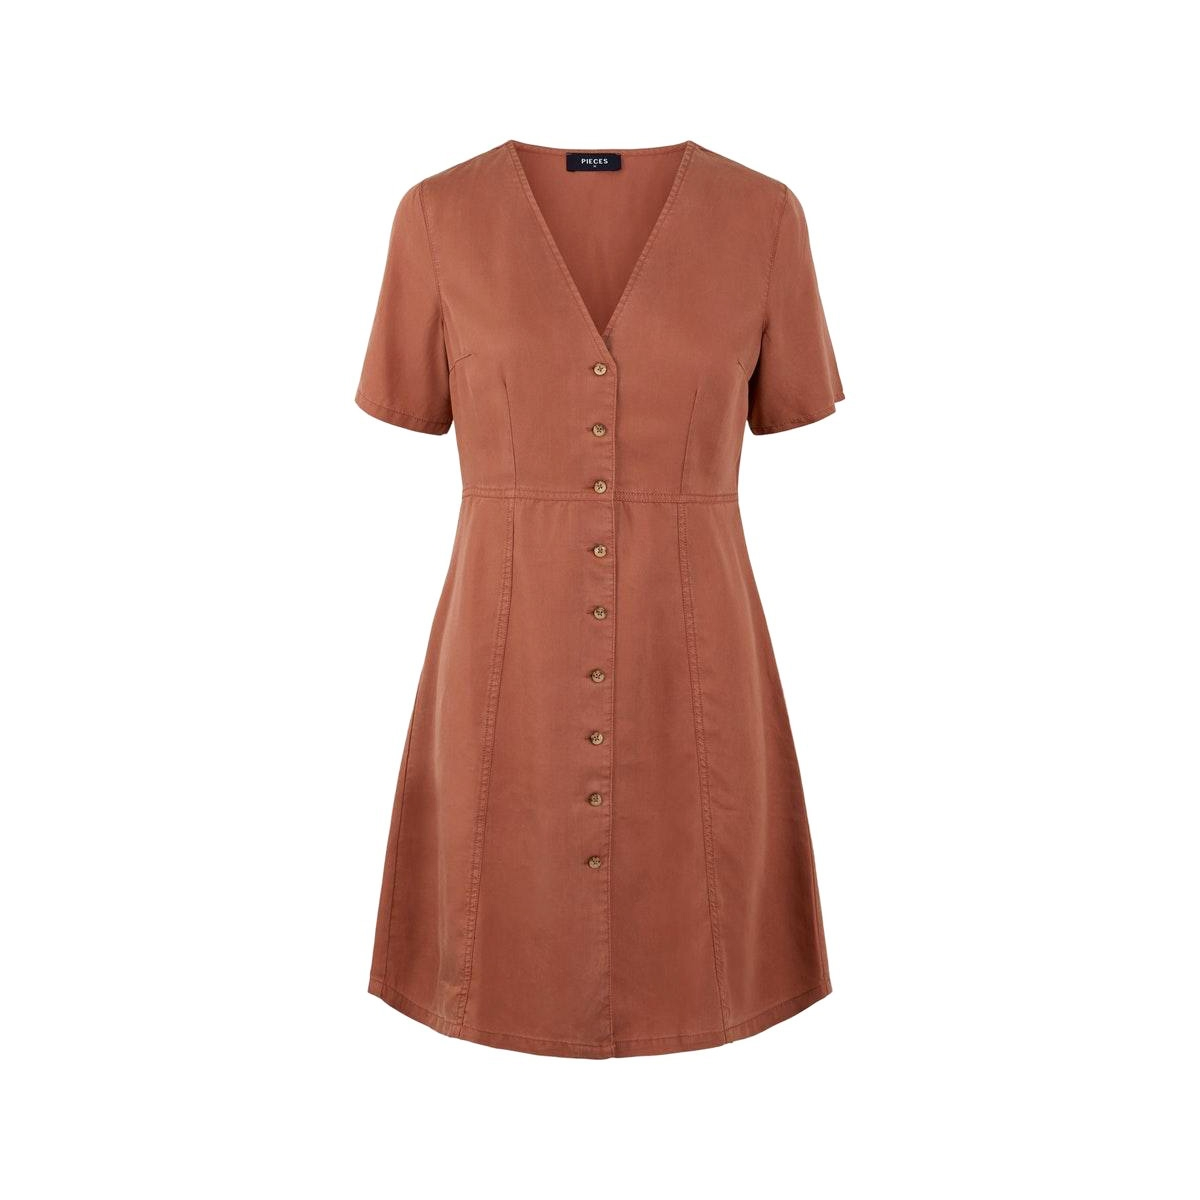 pcwhy ss lyocell dress-bi bc 17107431 pieces jurk copper brown